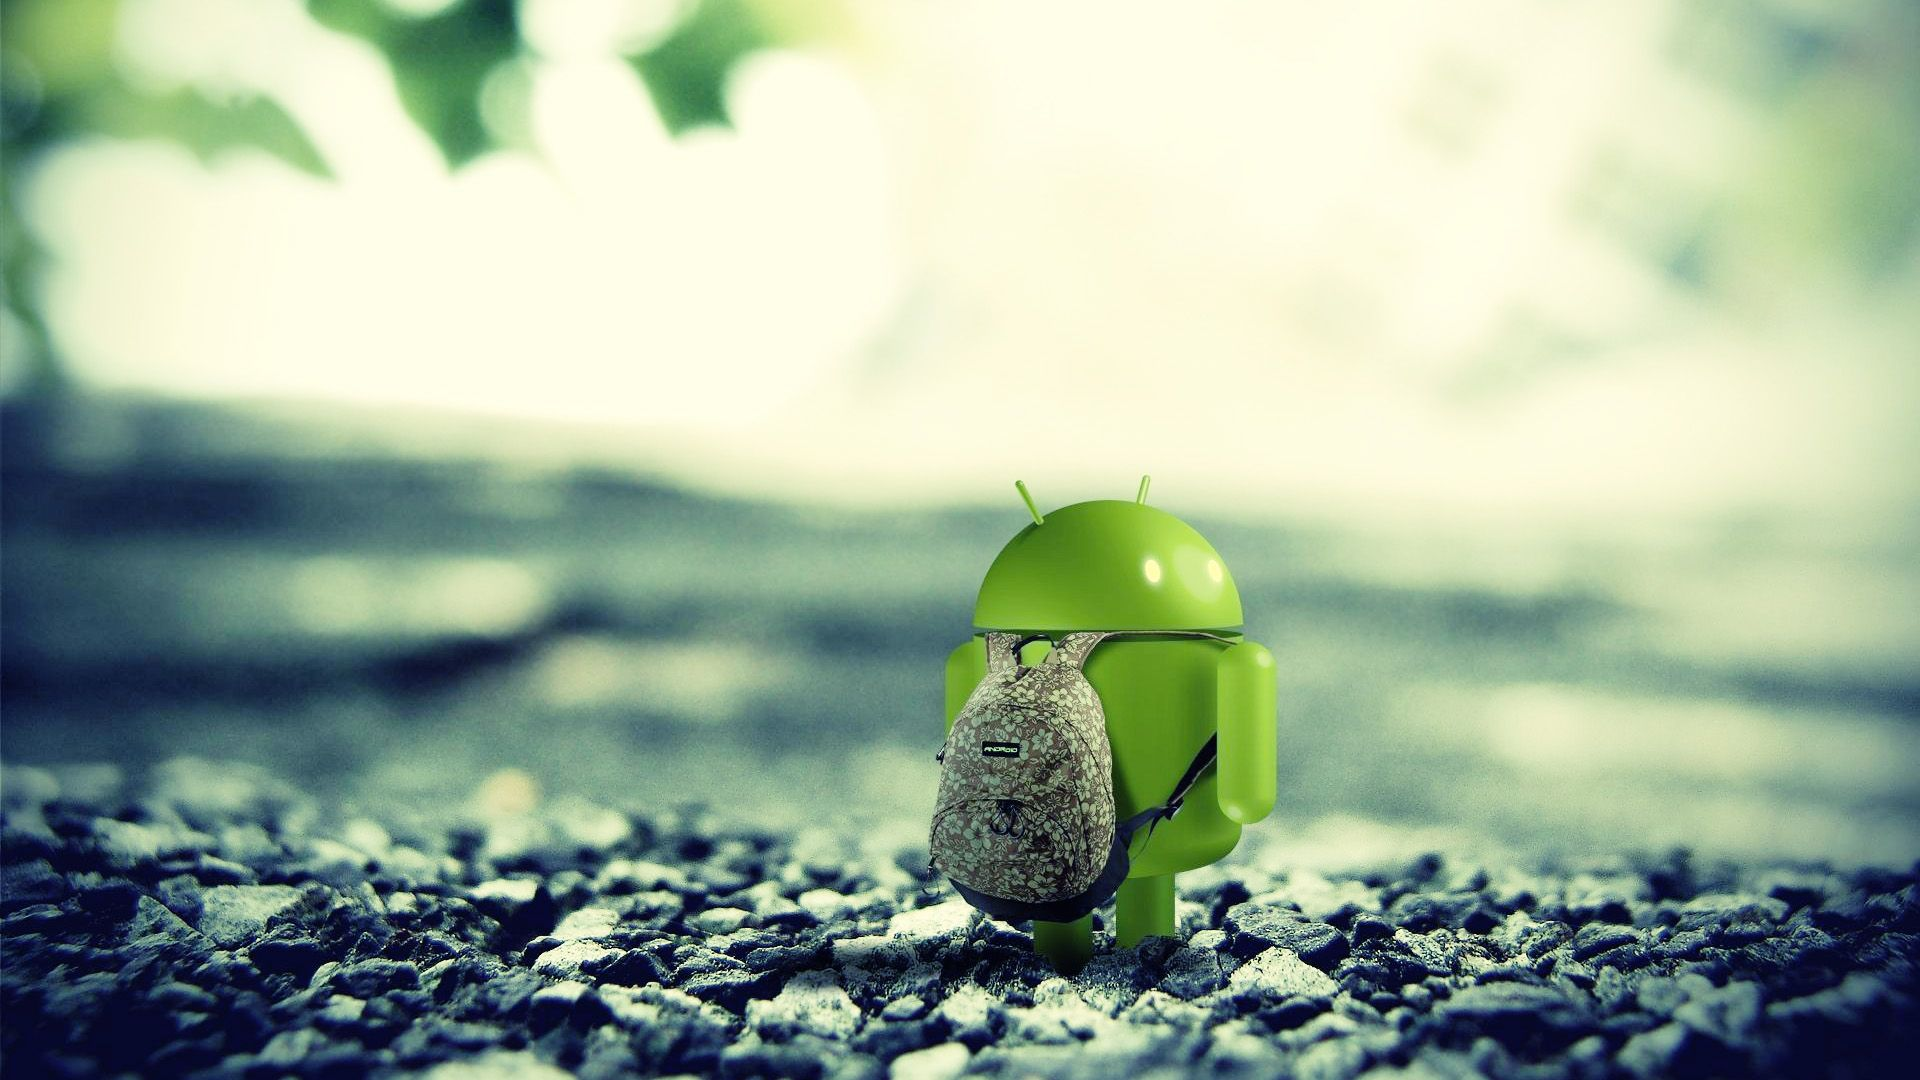 we compiled a collection of 20 best android wallpapers 2013 that you can set as desktop background to give your desktops a great new look